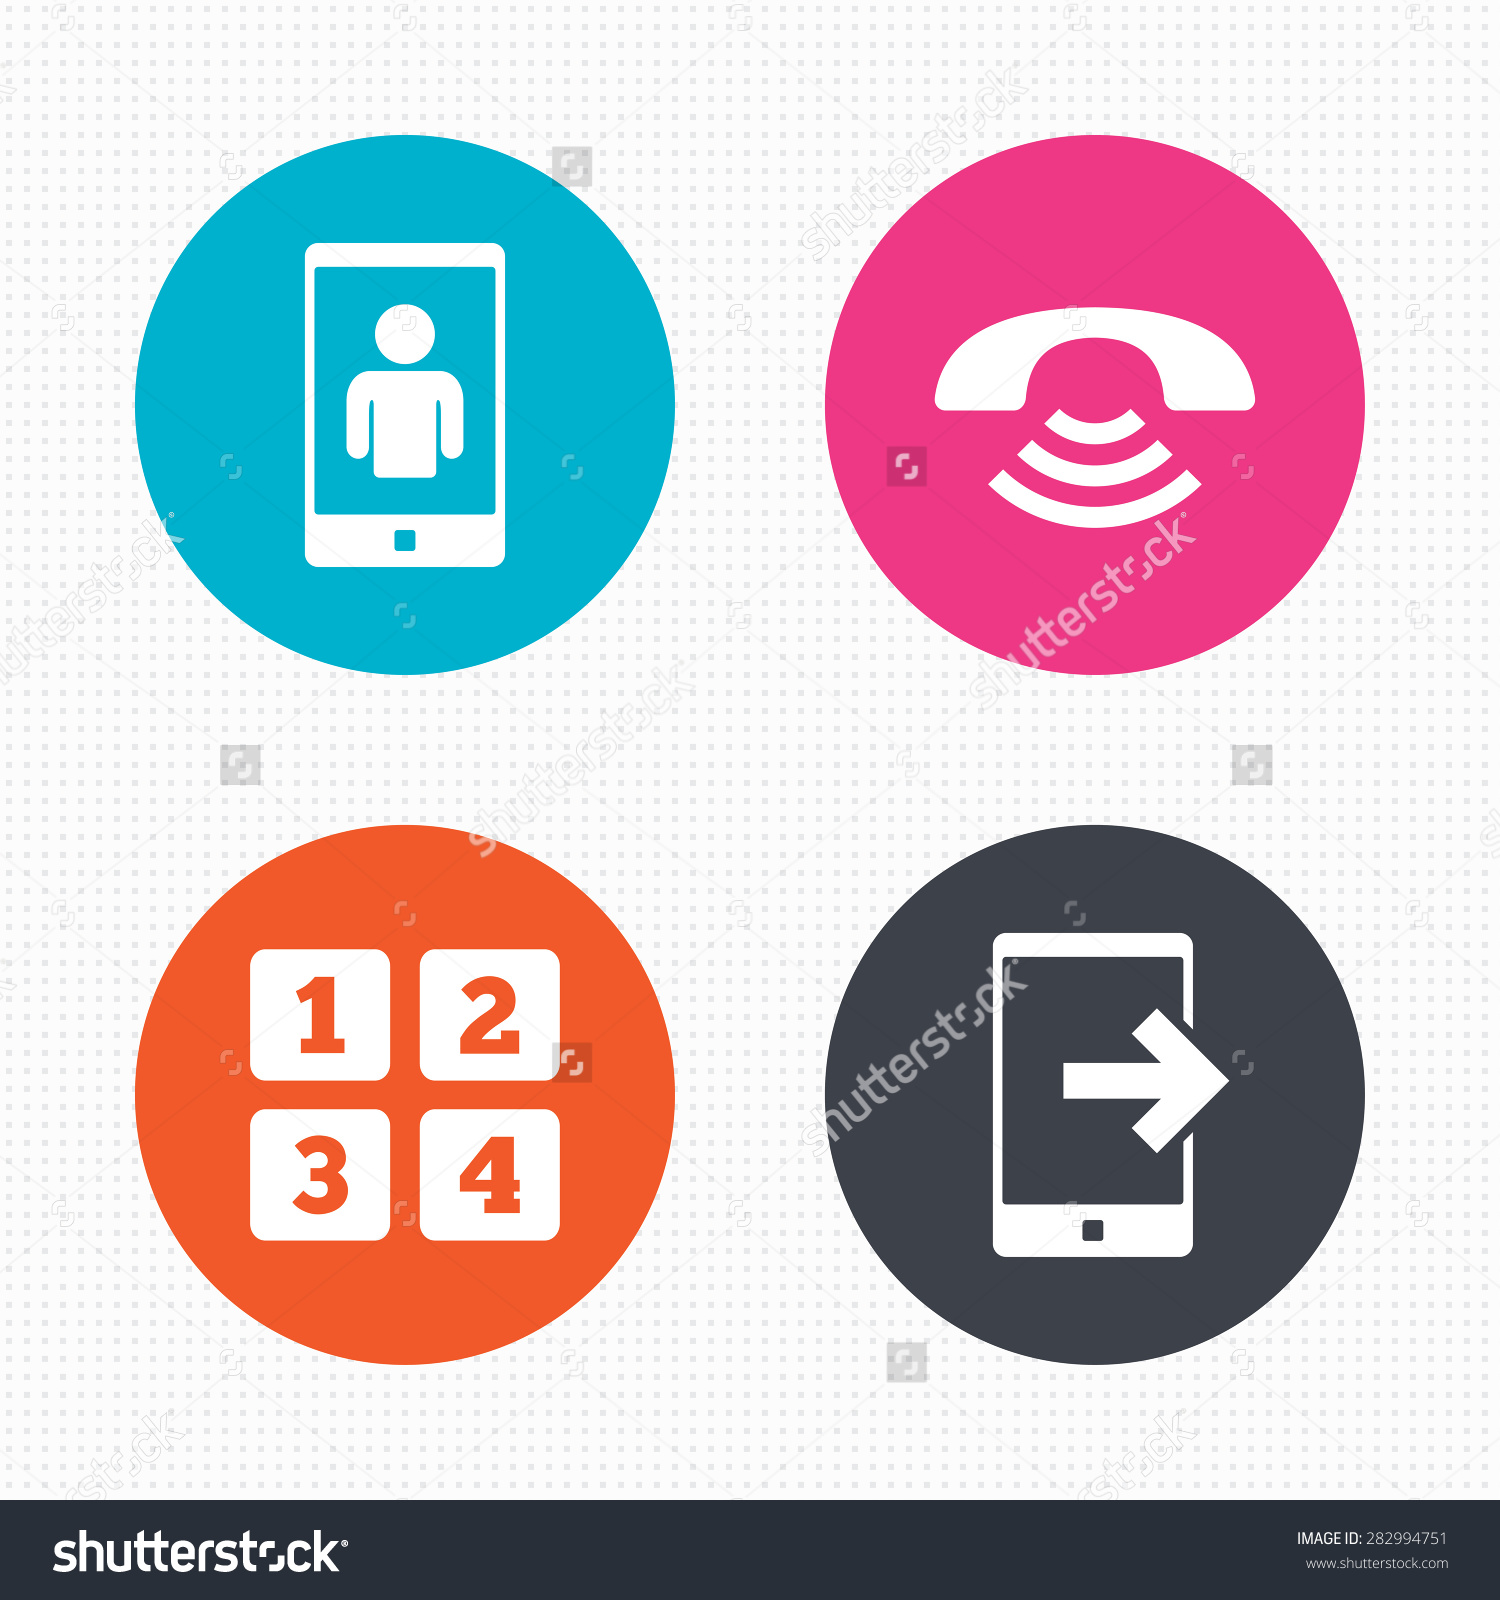 Circle Buttons Phone Icons Smartphone Video Stock Vector 282994751.